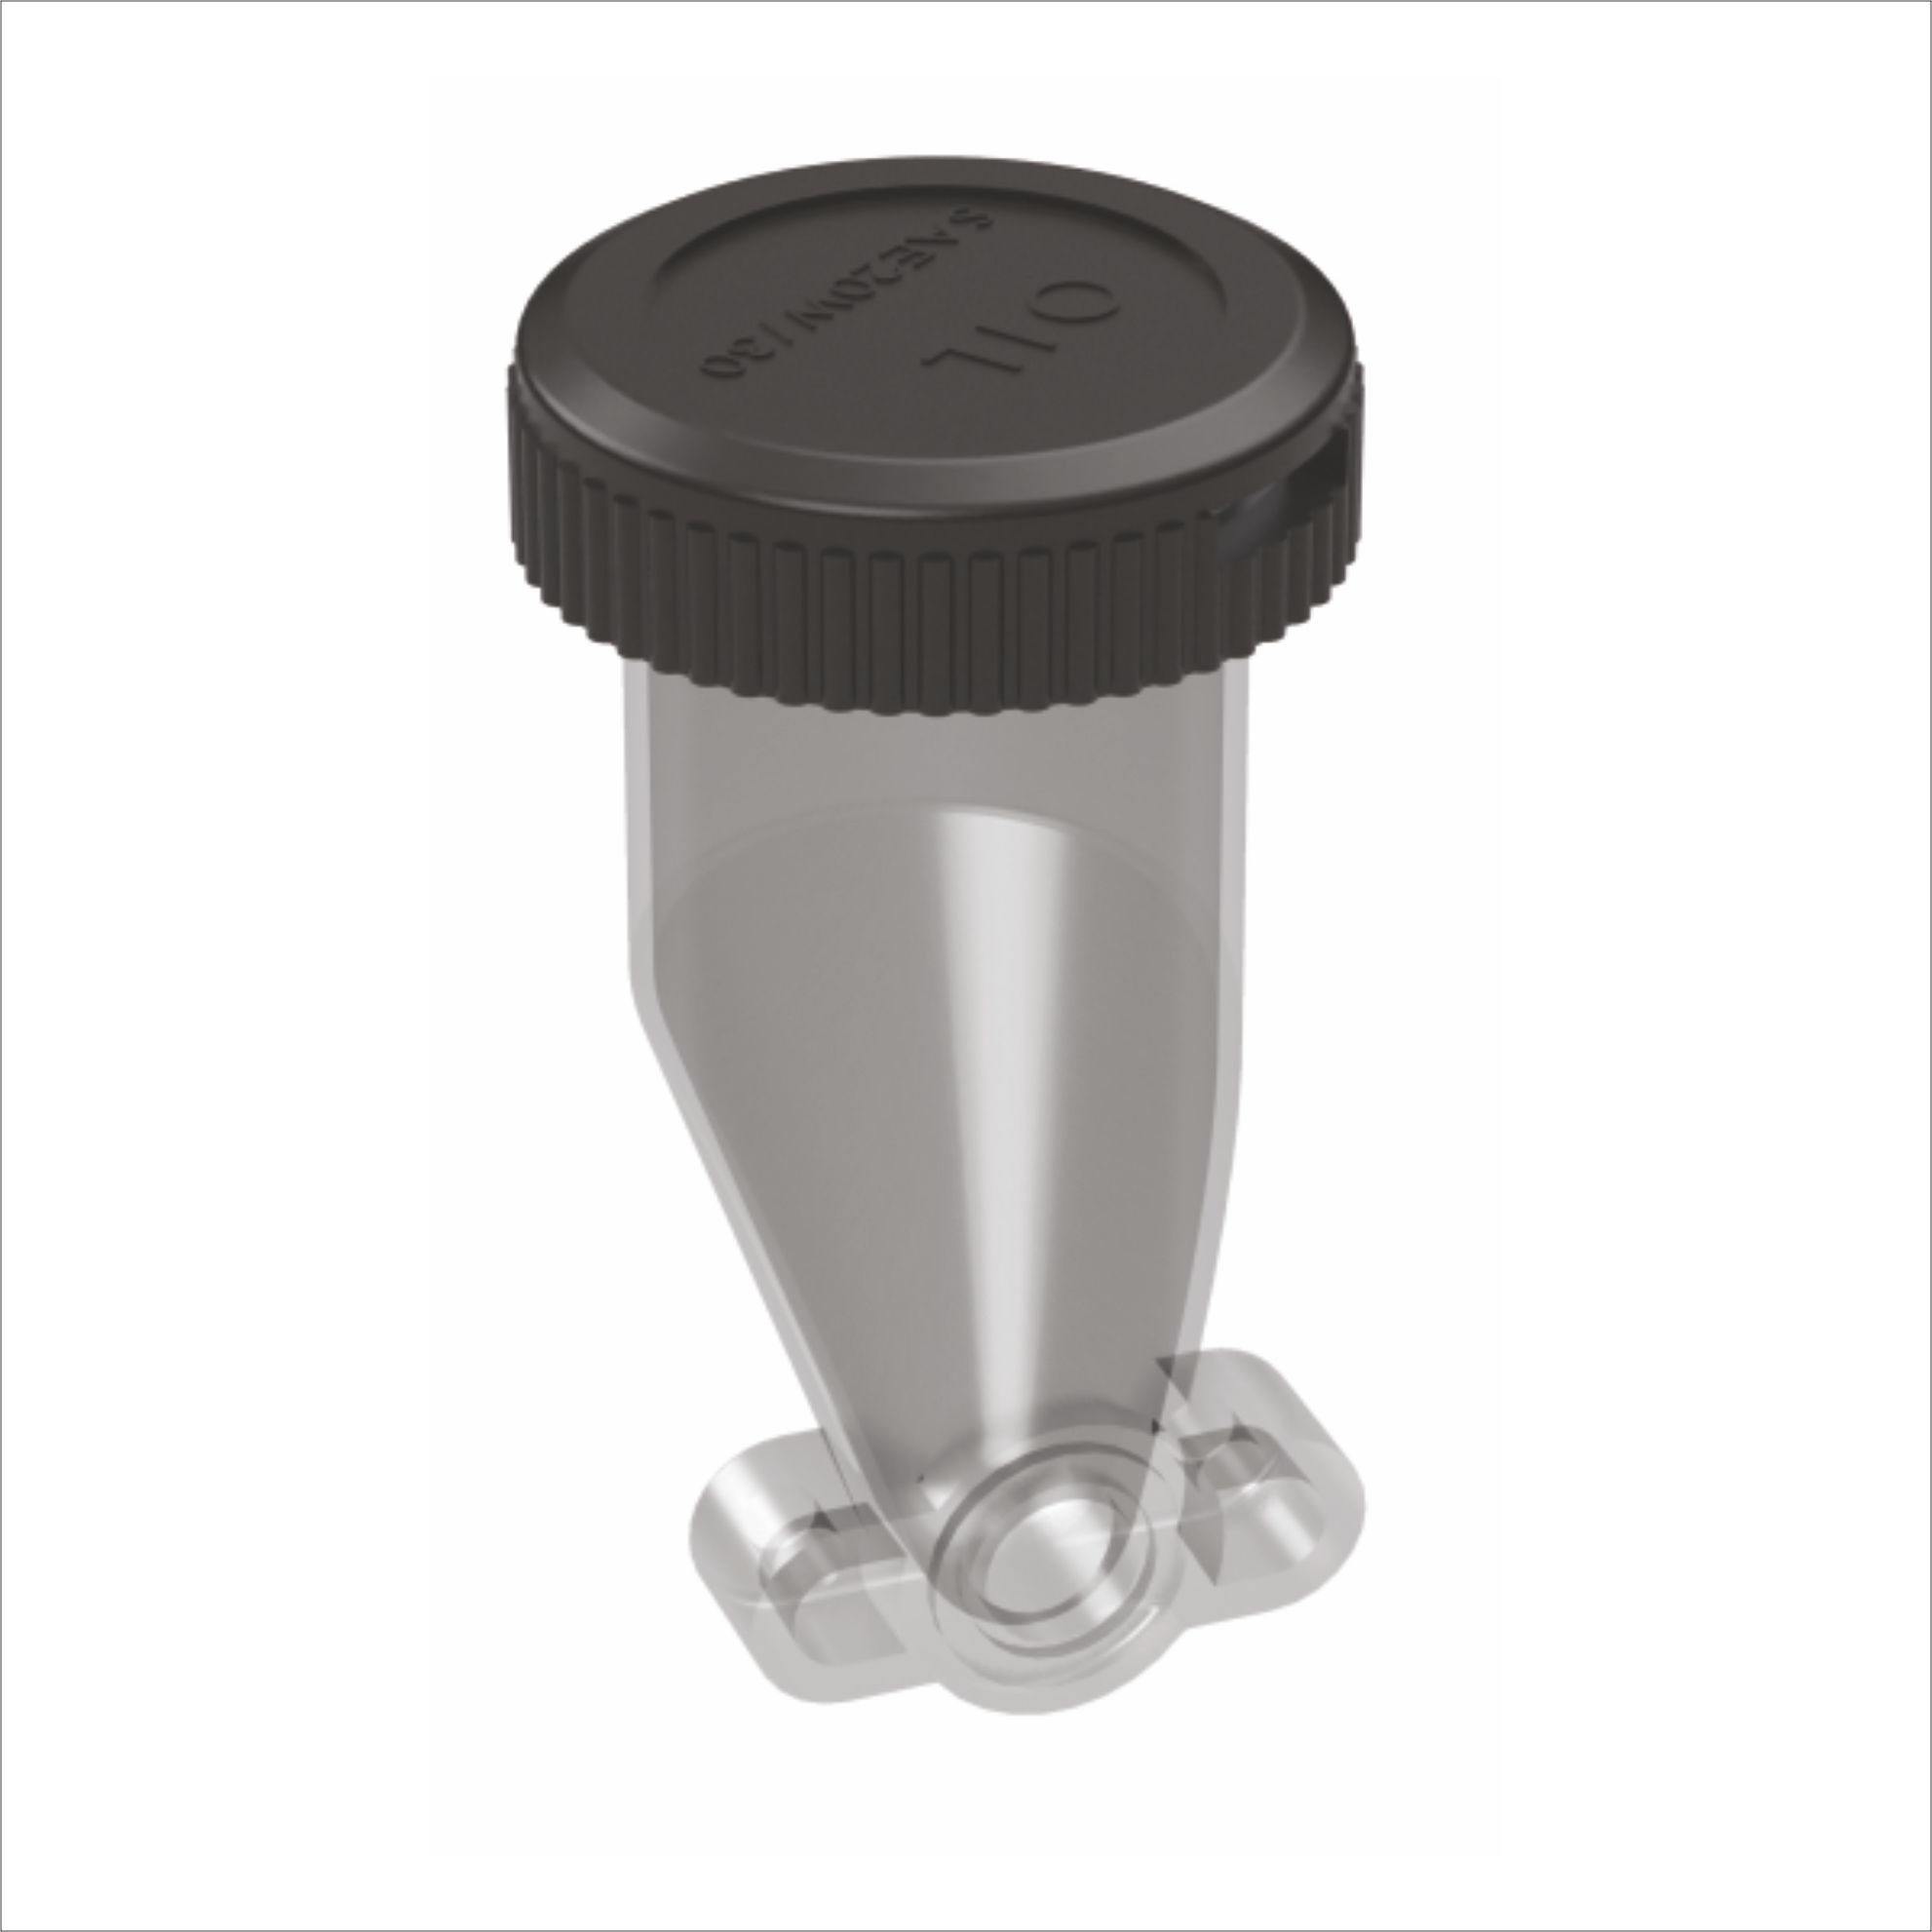 OILCAN FOR MTS 371 PUMPS